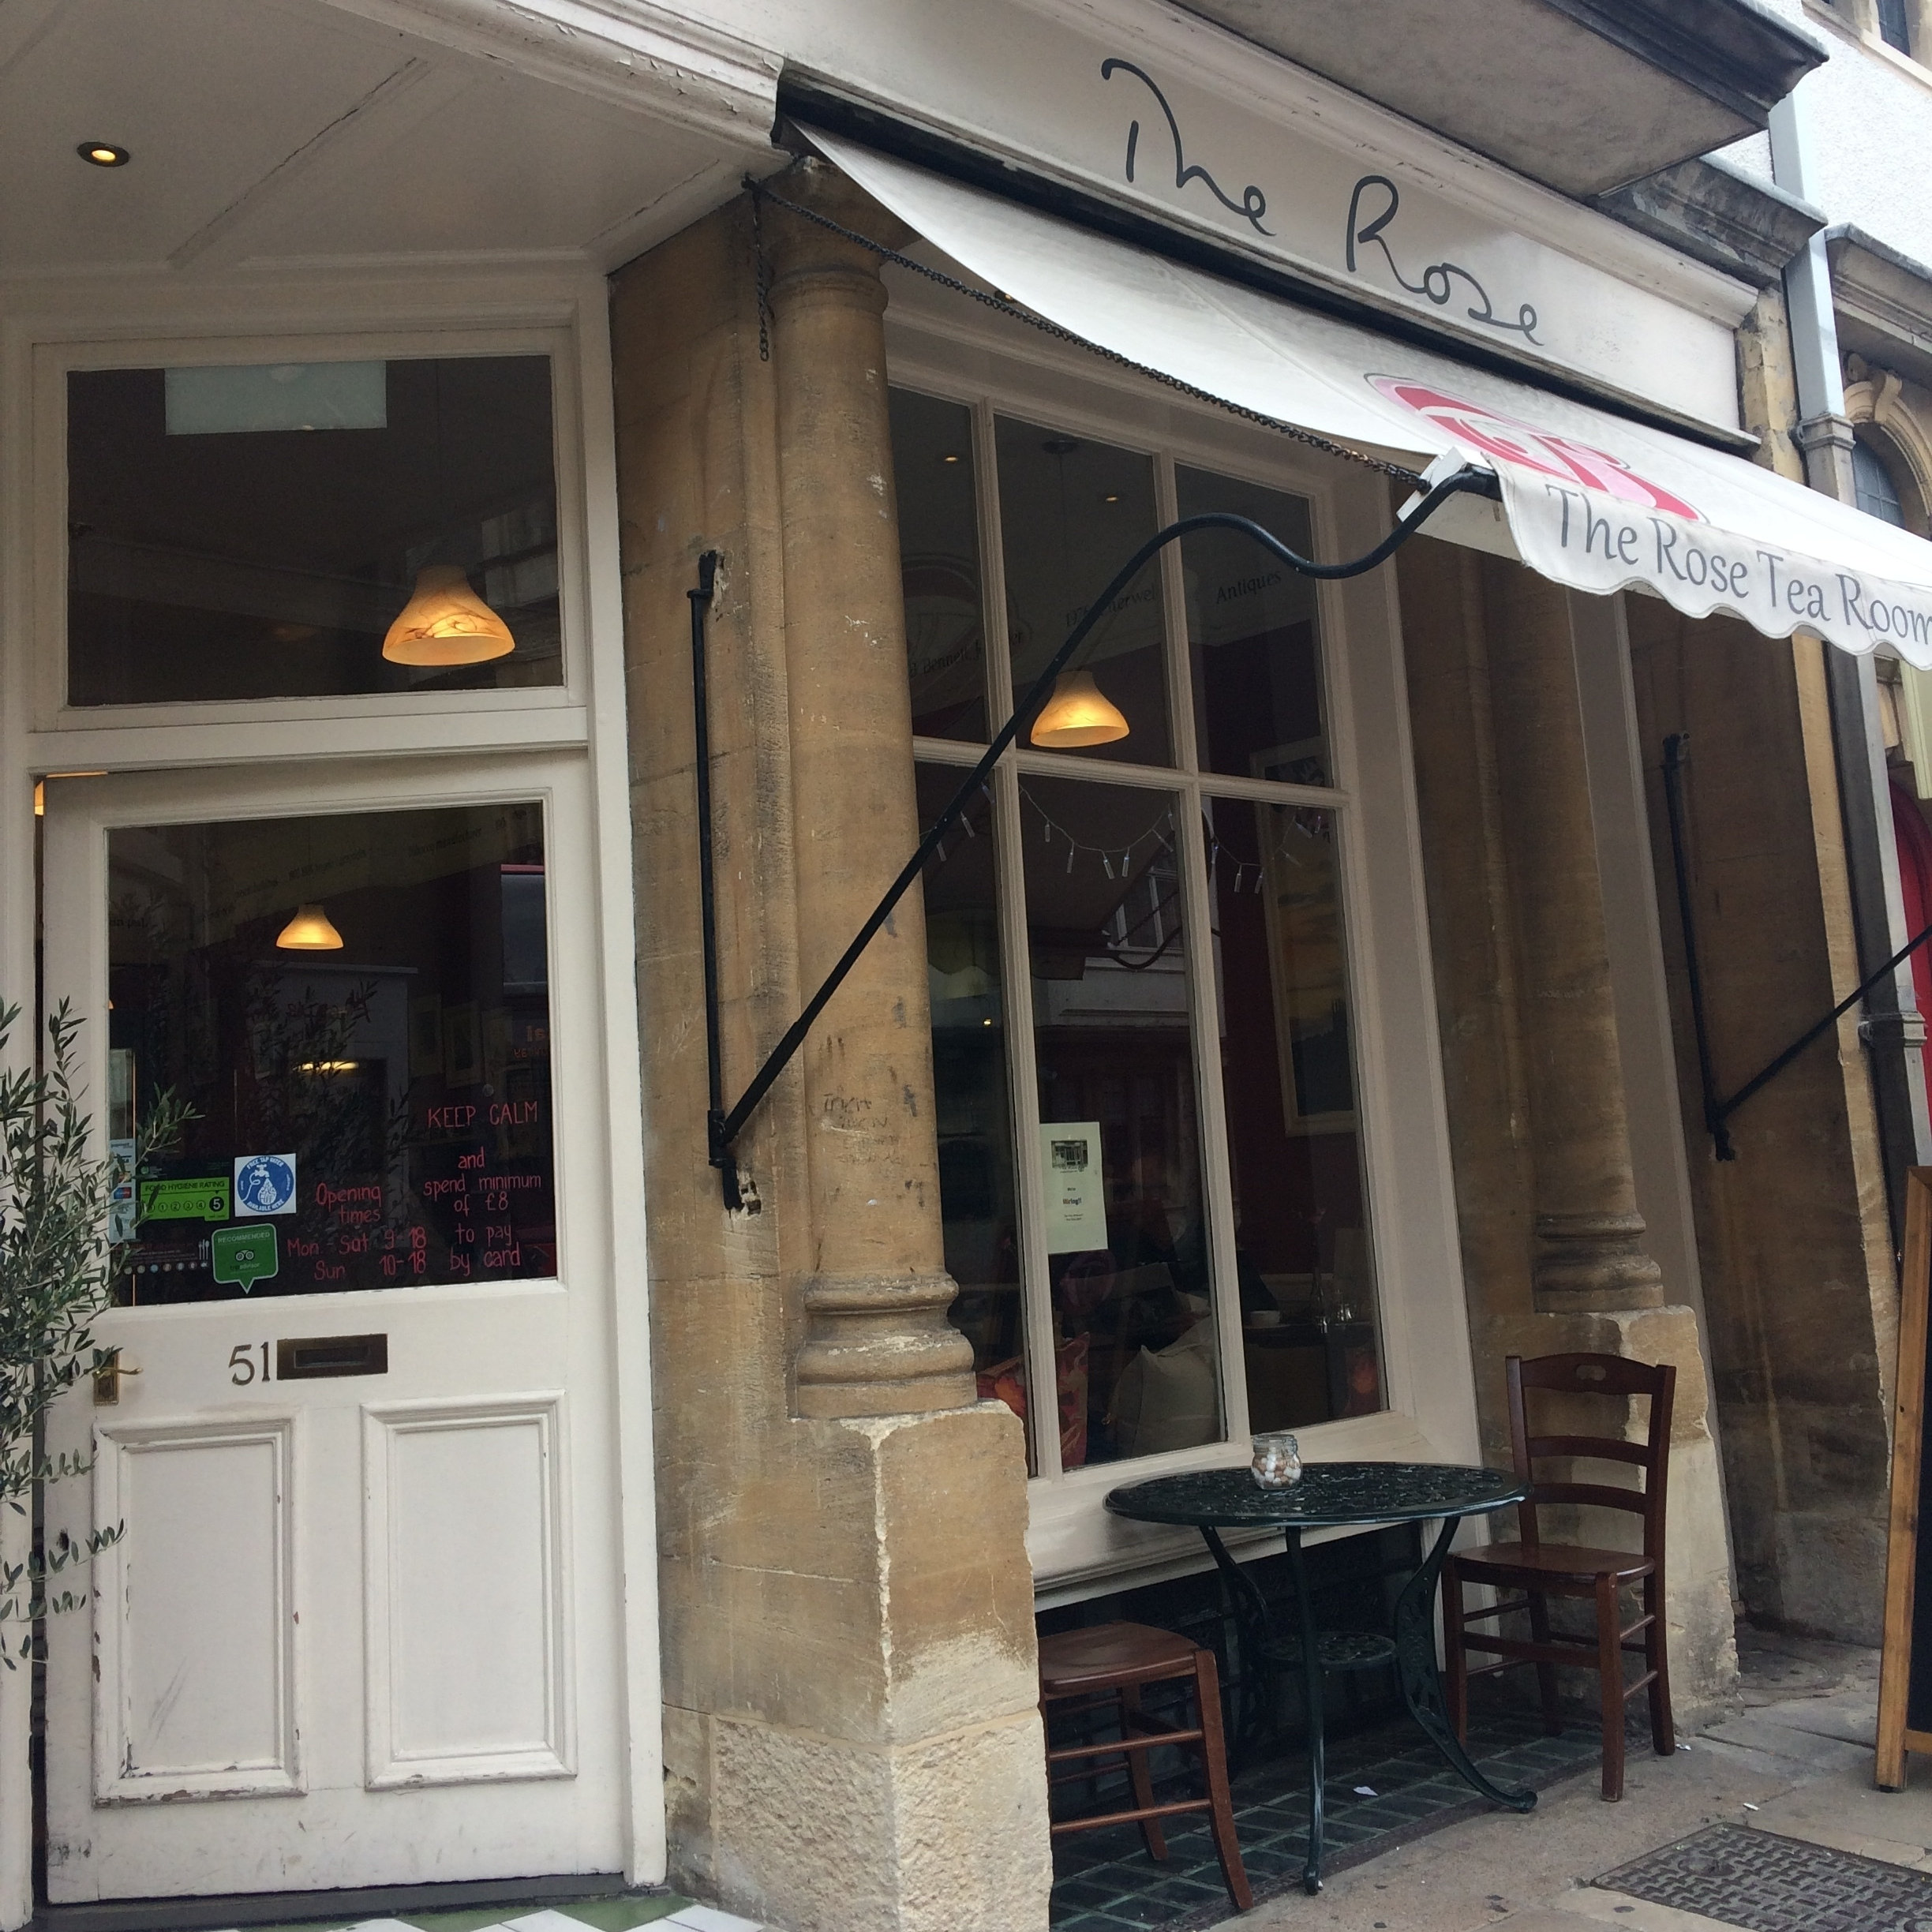 The Rose - This historic Oxford tea room is right in the heart of the city. You can get a full English breakfast here, lunch as well as a traditional tea and scones.51 Hight Street, OX1 4ASthe-rose.biz